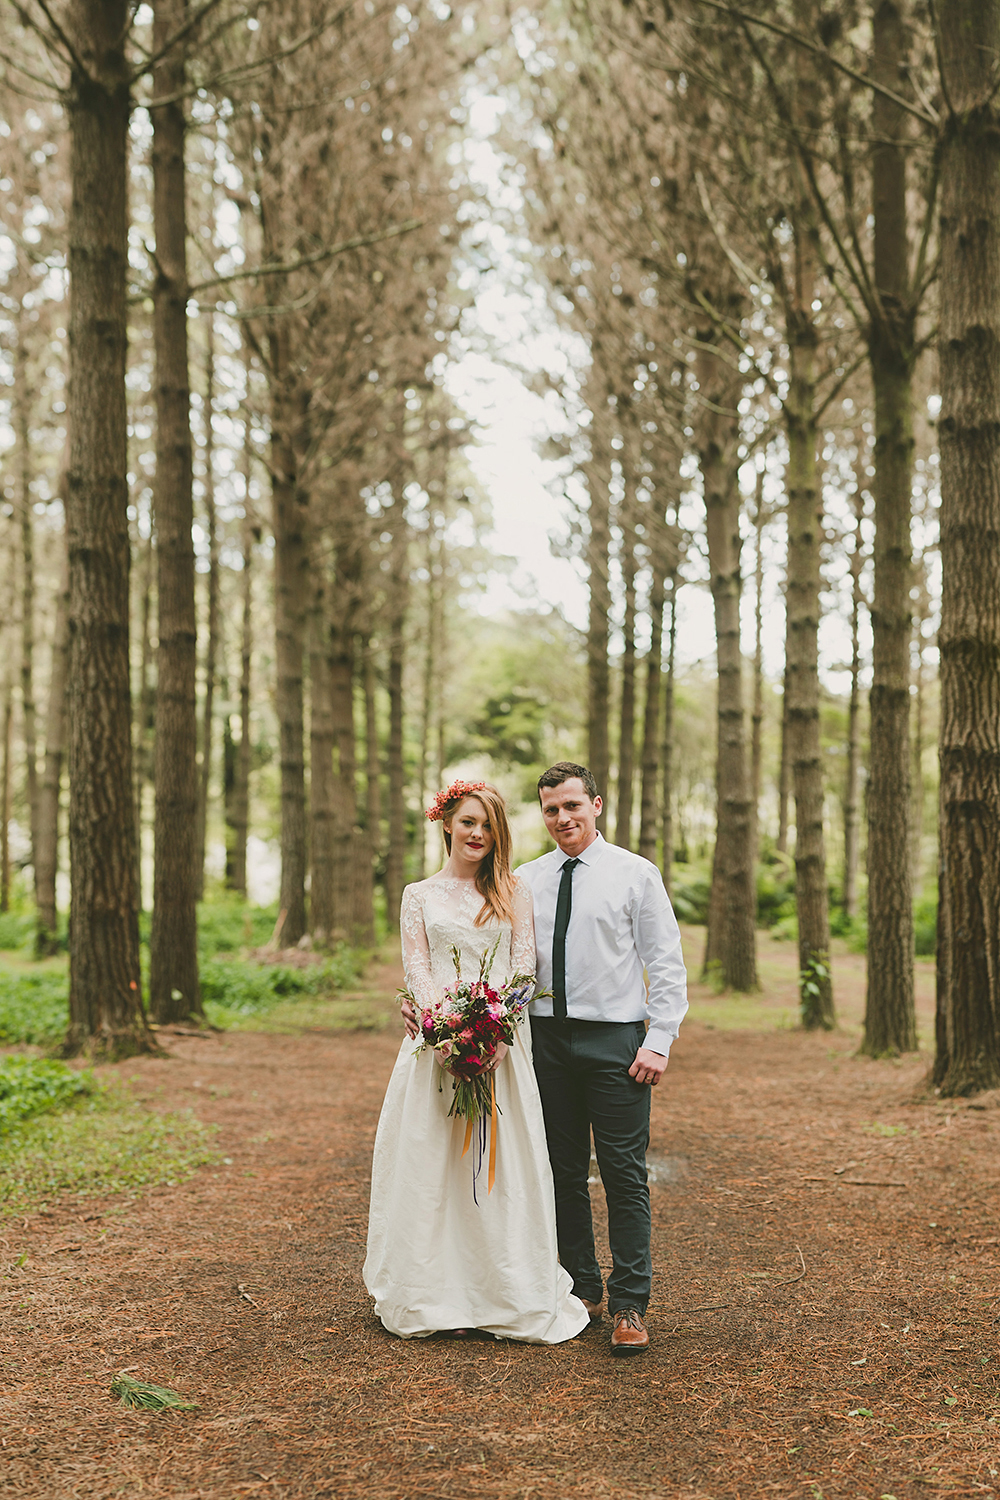 Hunua Ranges Auckland forest boho Wedding photographer rainy day fun bridal party